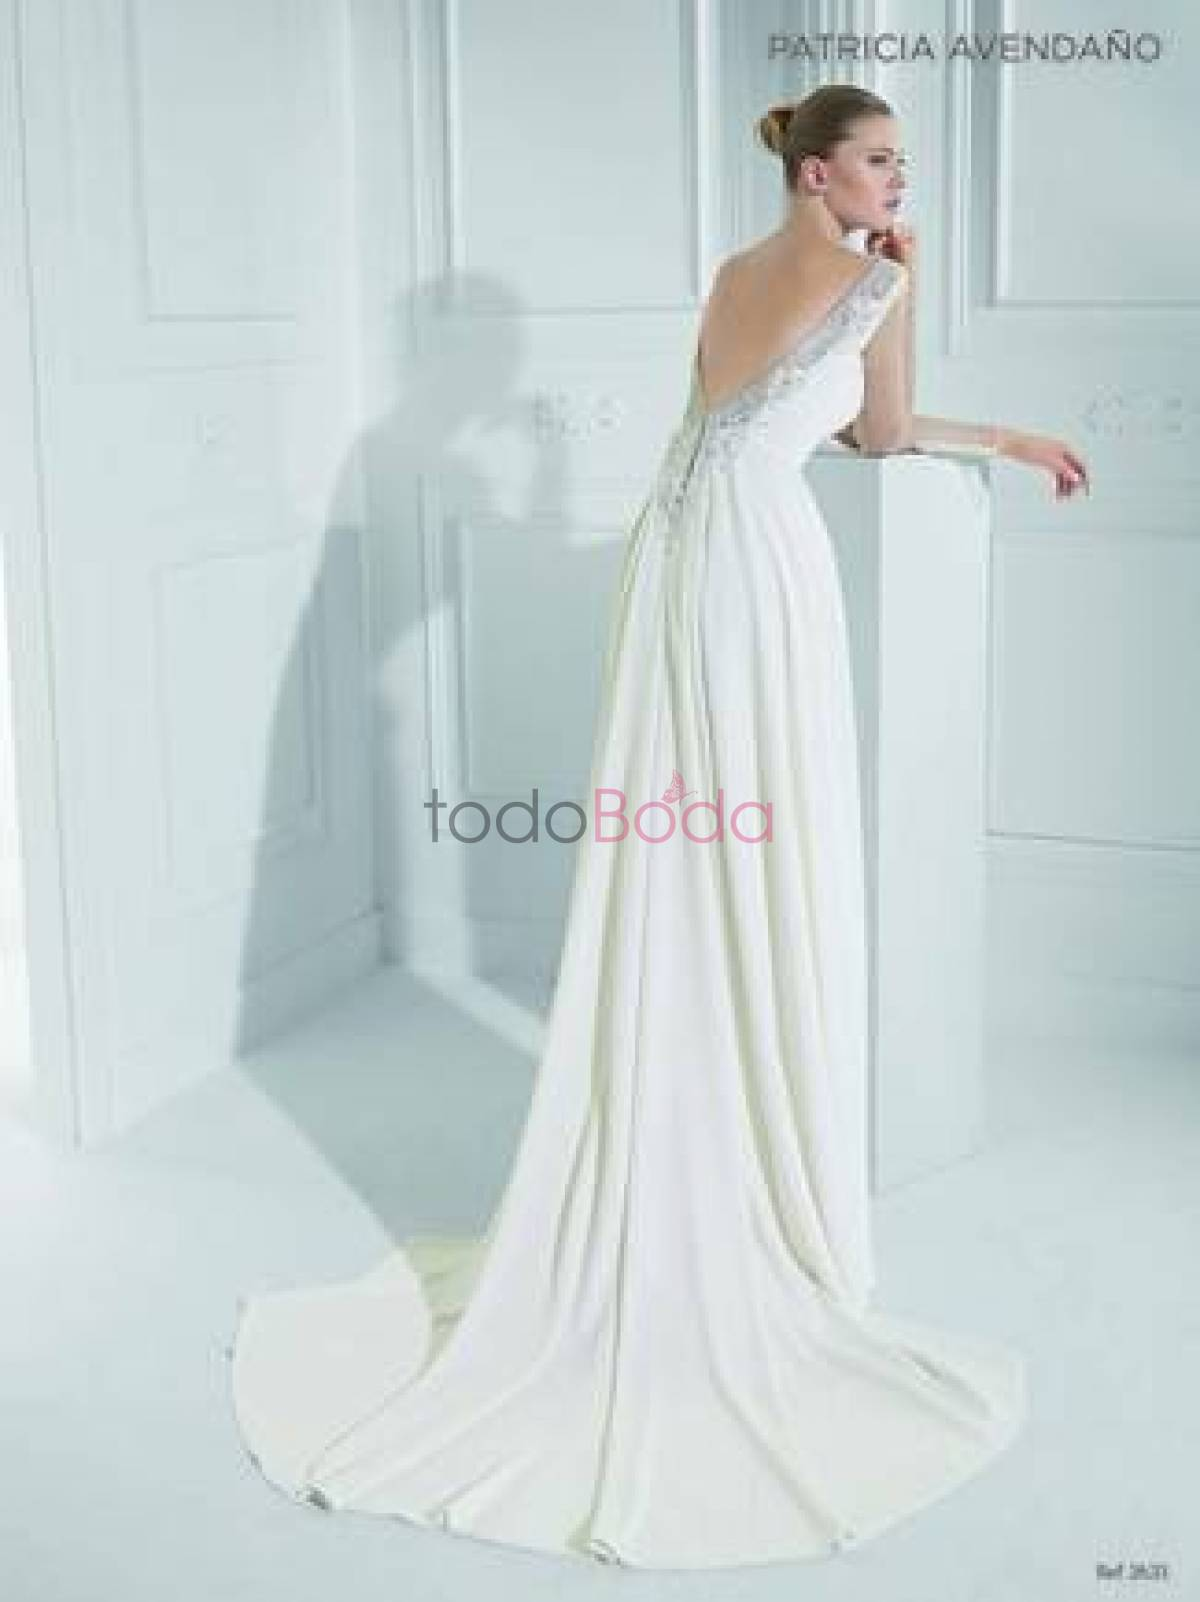 Delighted Vestido Novias Baratos Images - Wedding Ideas - memiocall.com